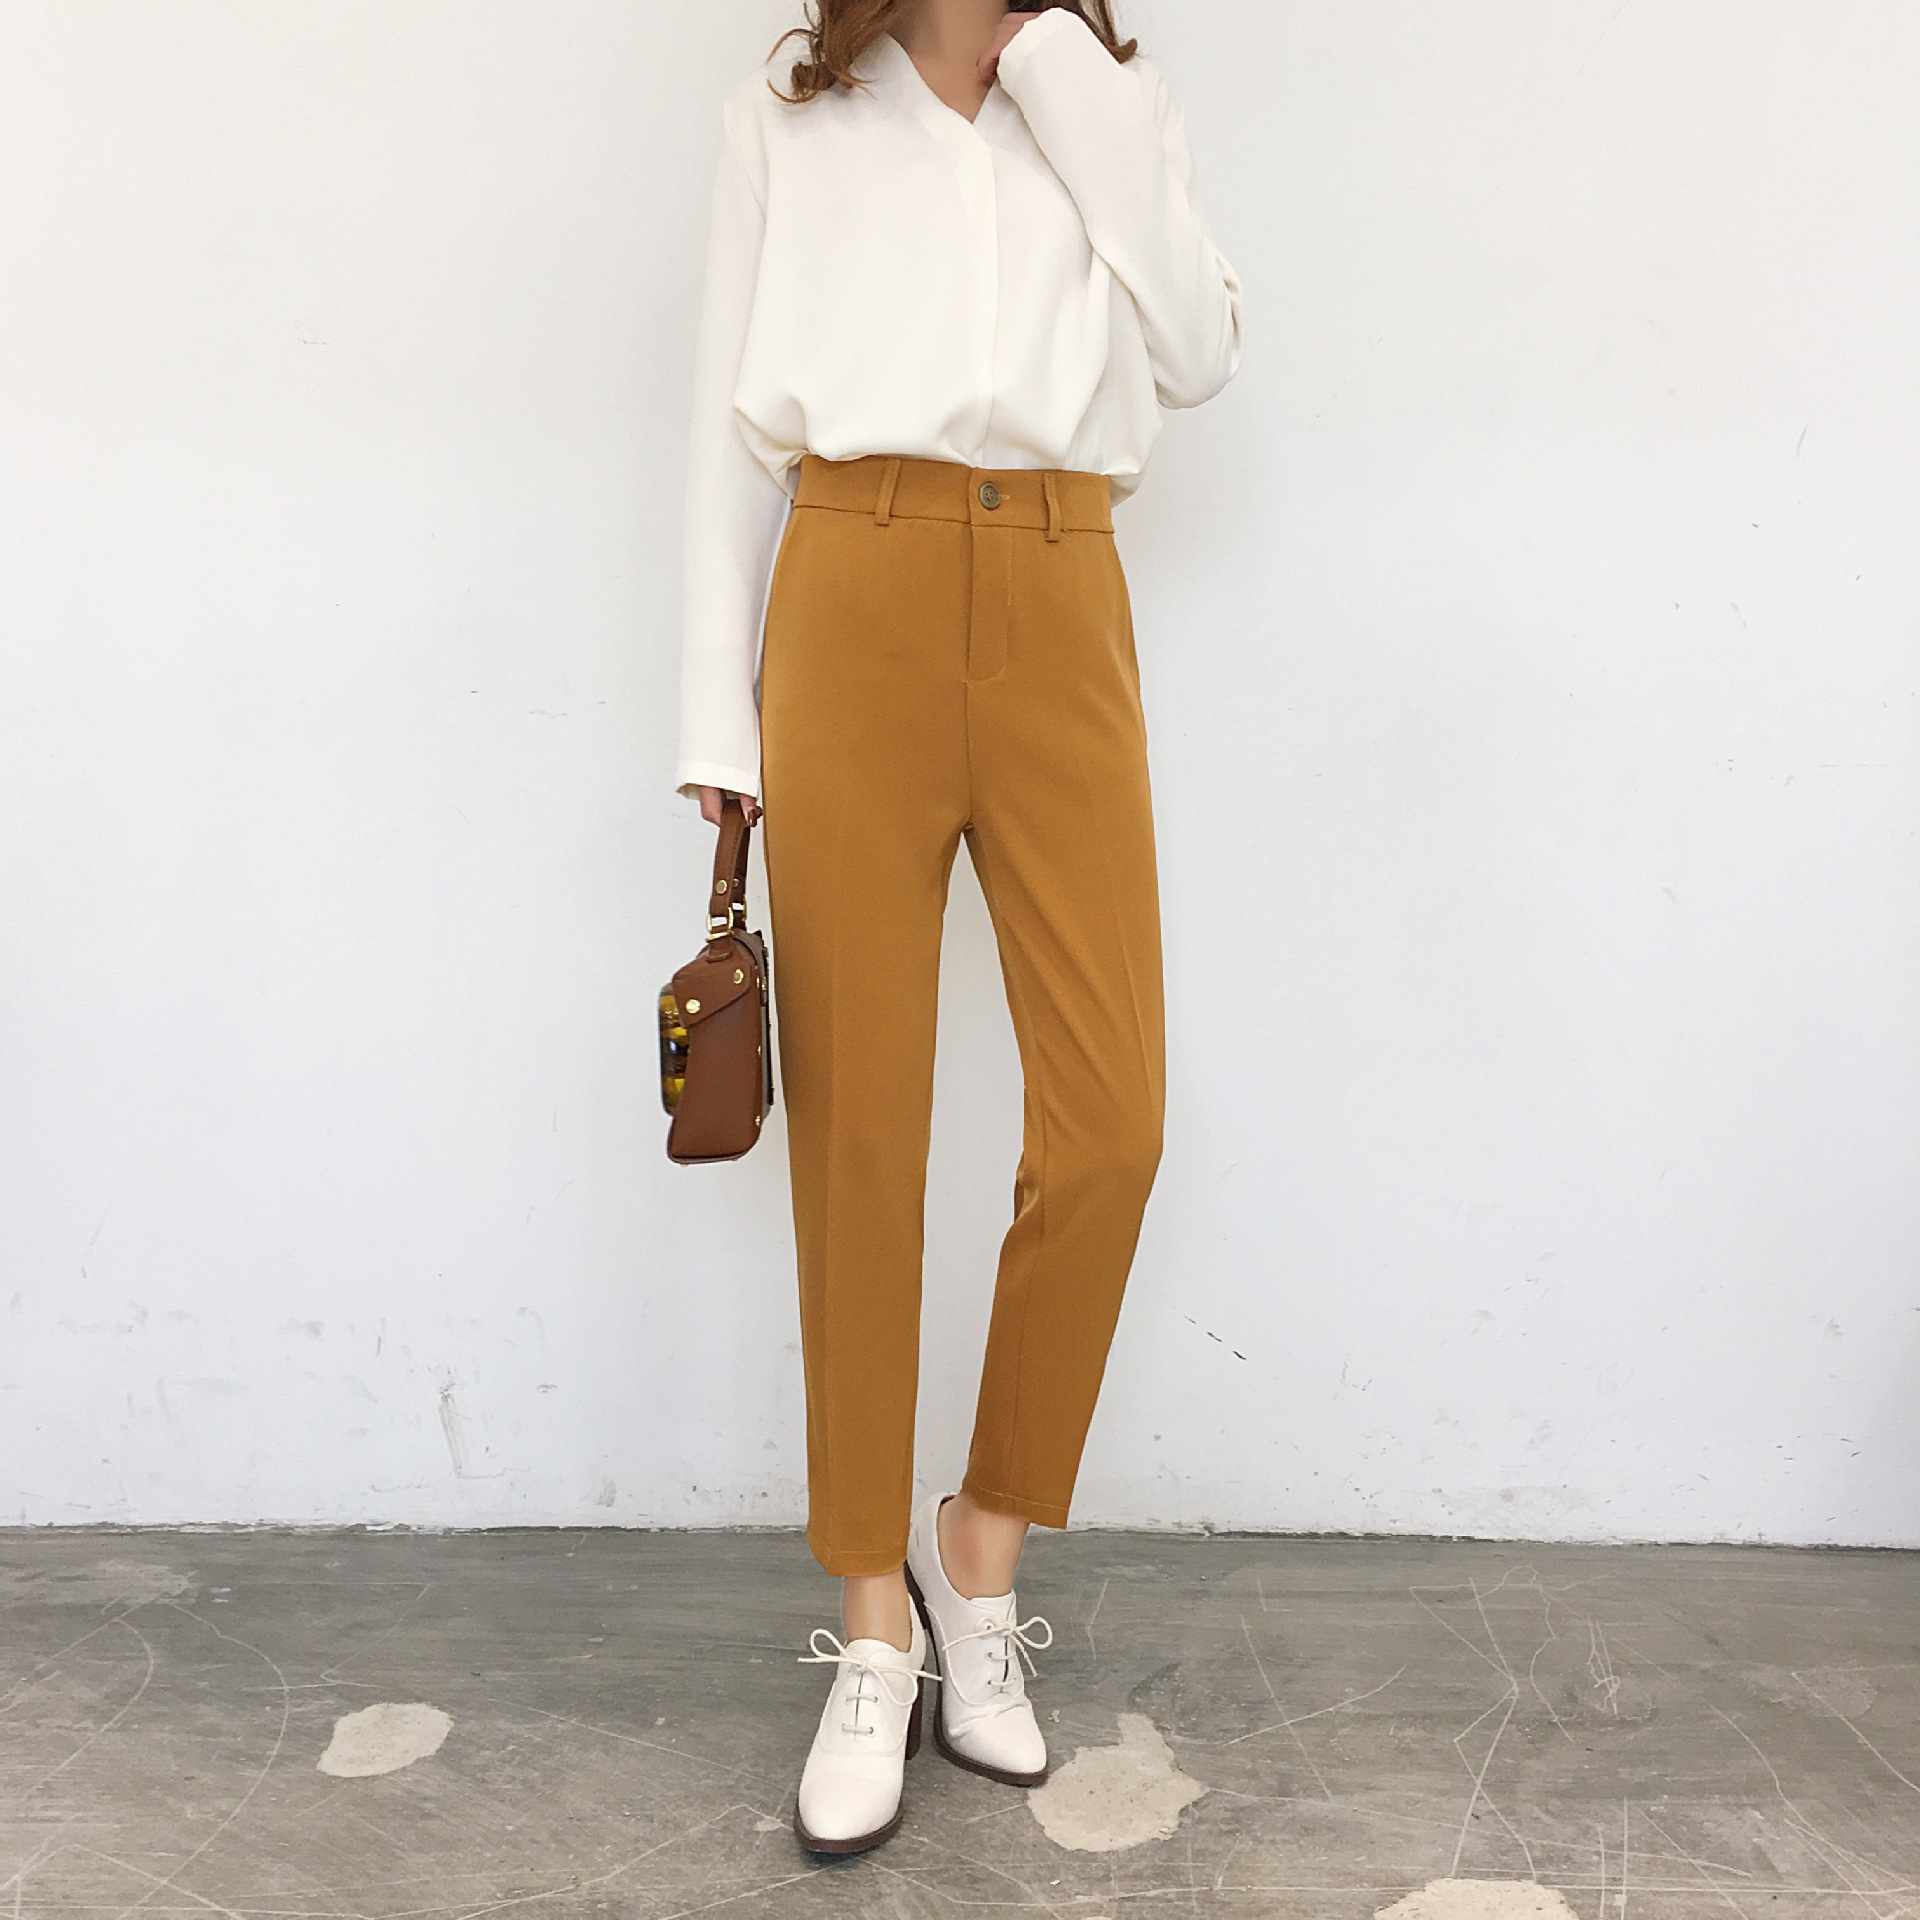 Suit   Pants   Women's   Capri   Casual   Pants   Spring New Style Skinny Harem   Pants   Versatile Elastic Waist Slim Fit Slimming H-159